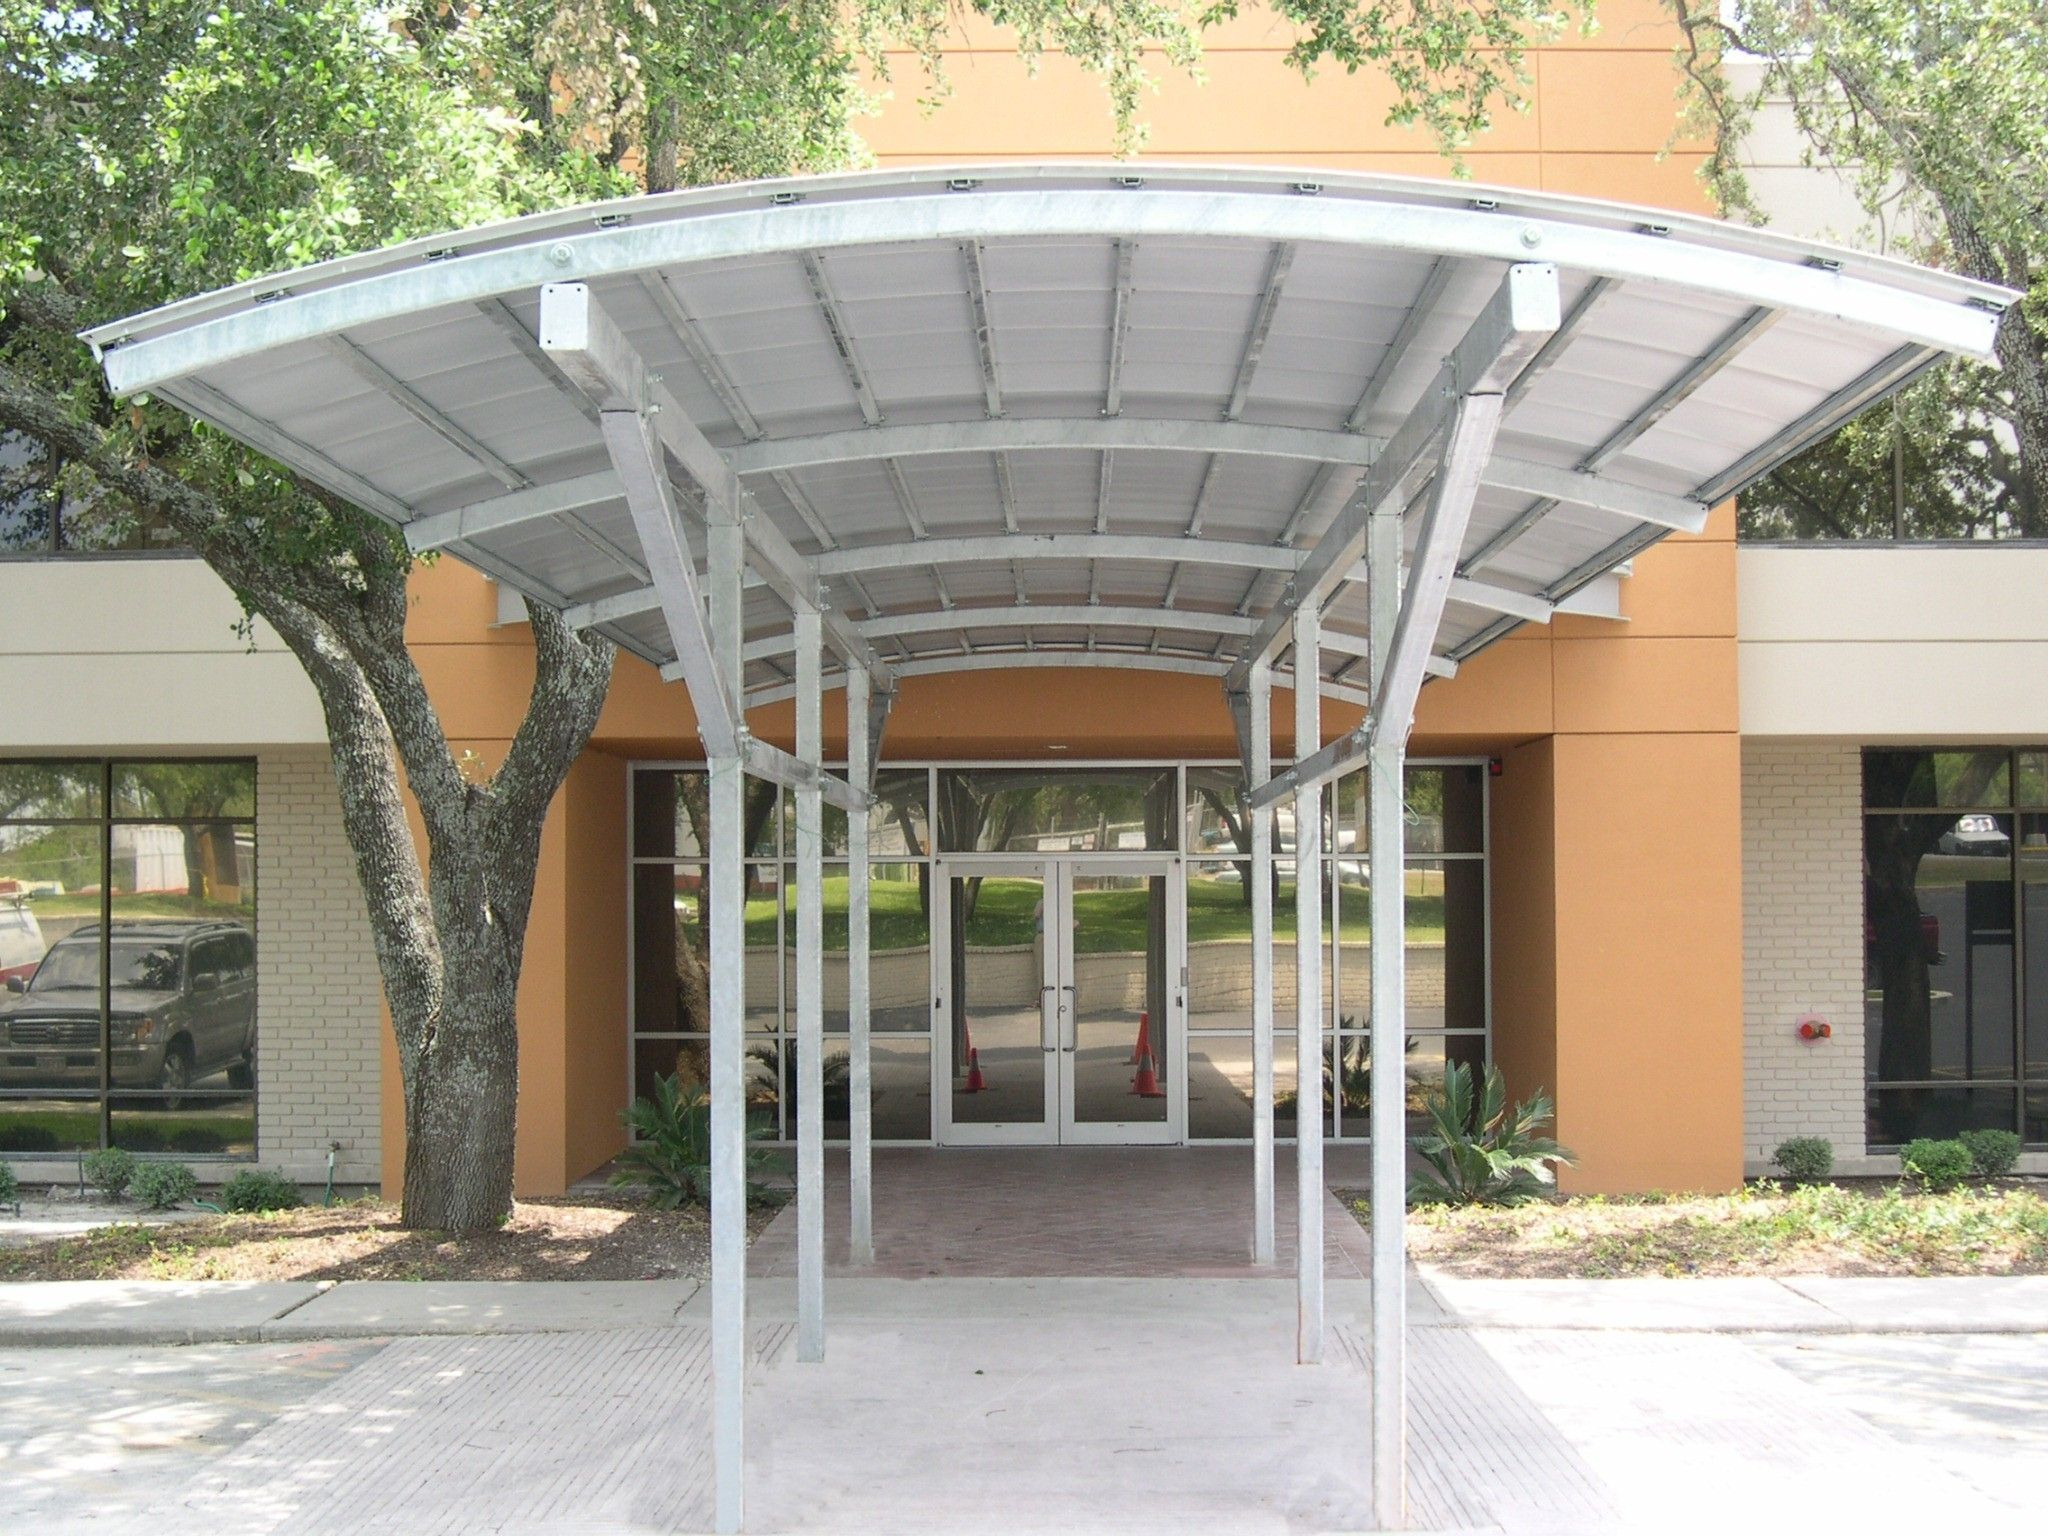 Commercial Entrance Canopies | Metal Awnings u0026 Canopies & Commercial Entrance Canopies | Metal Awnings u0026 Canopies | Awnings ...